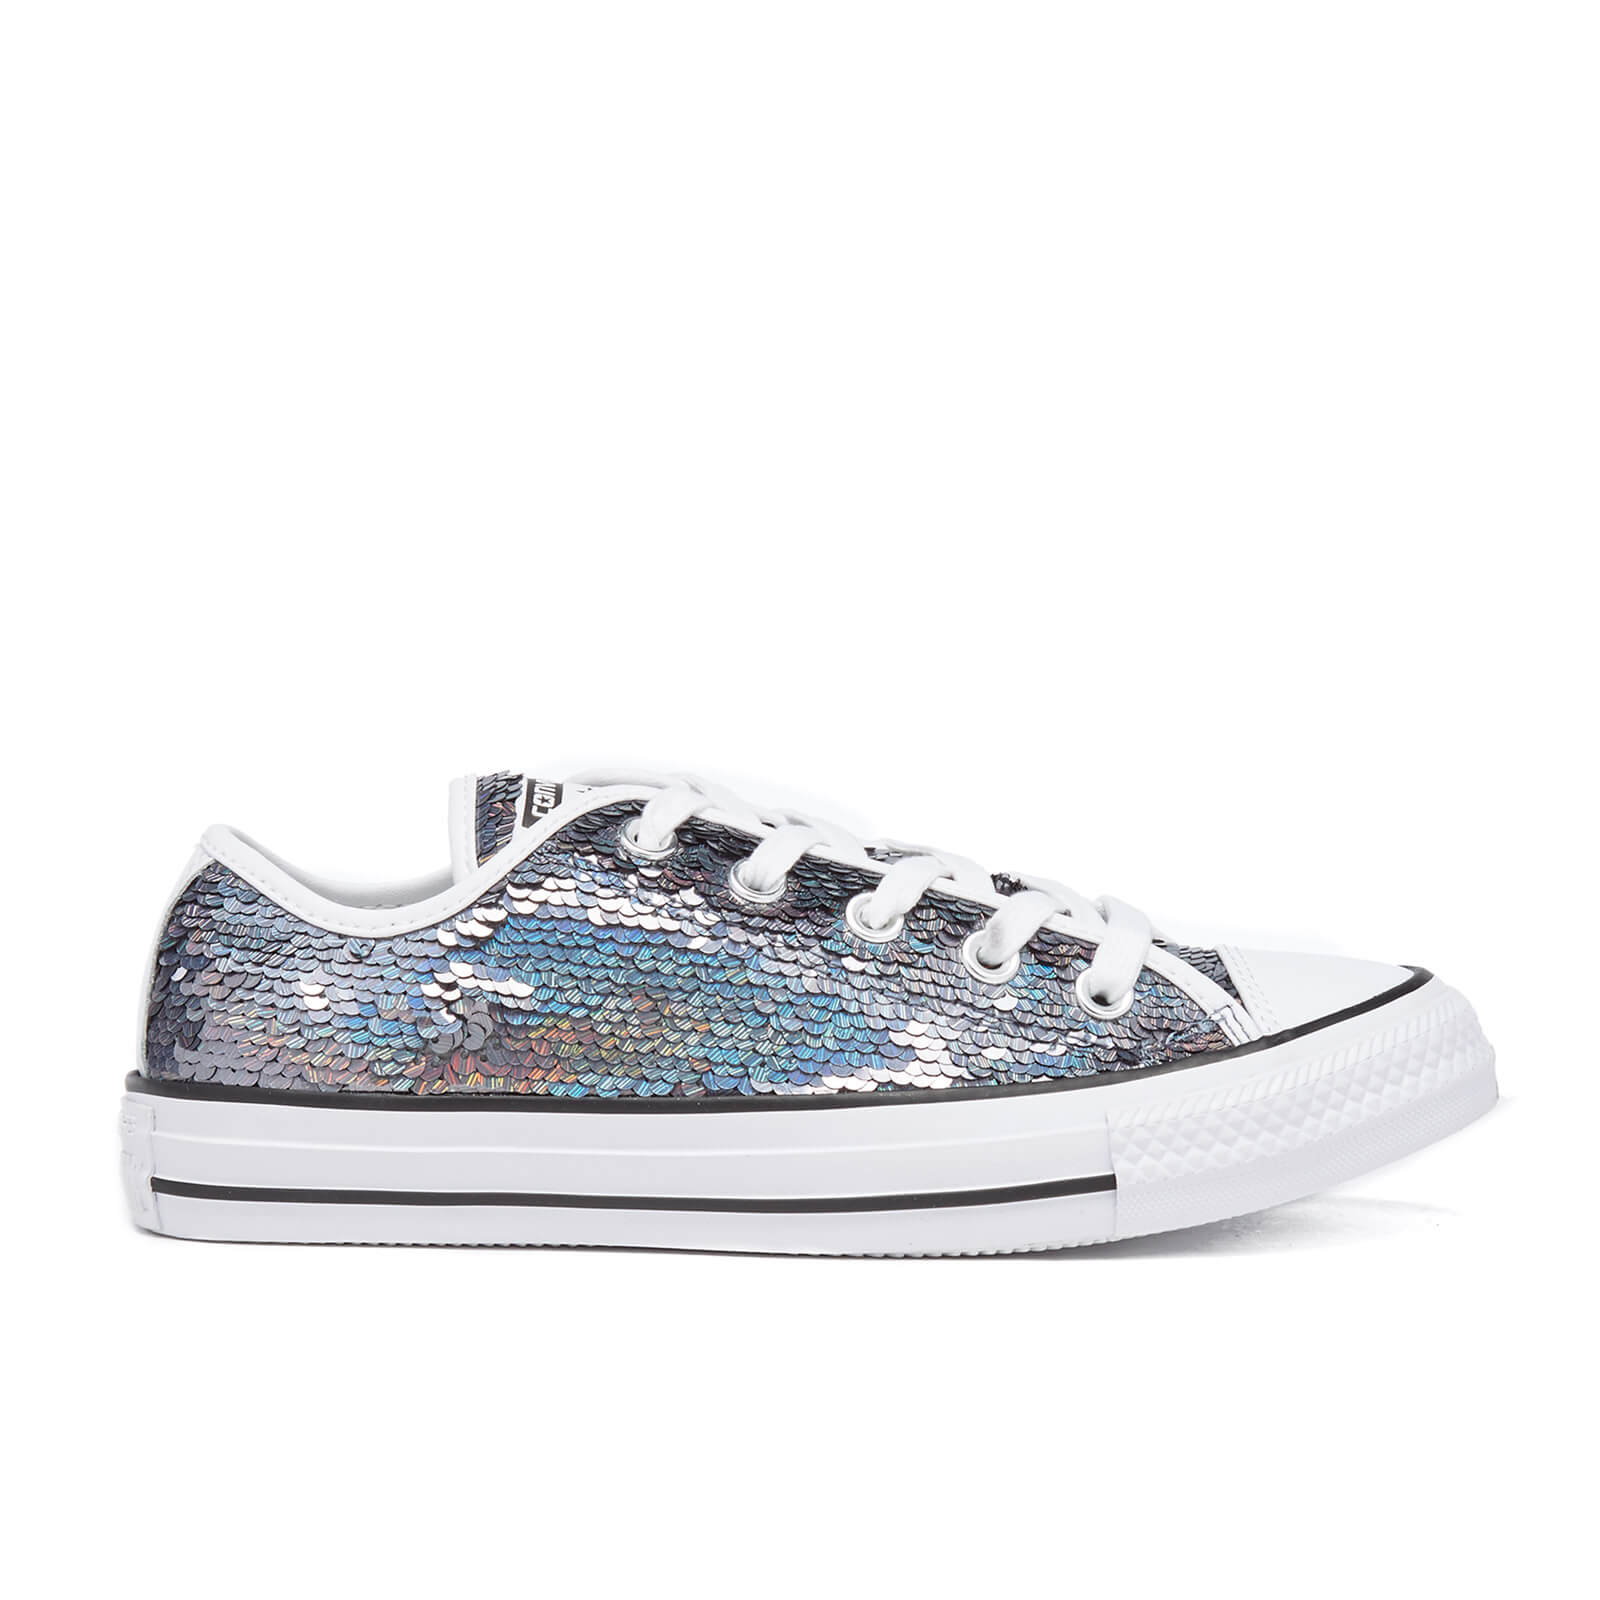 3c946e827e34c9 Converse Women s Chuck Taylor All Star Holiday Party OX Trainers - Gunmetal  White Black Womens Footwear